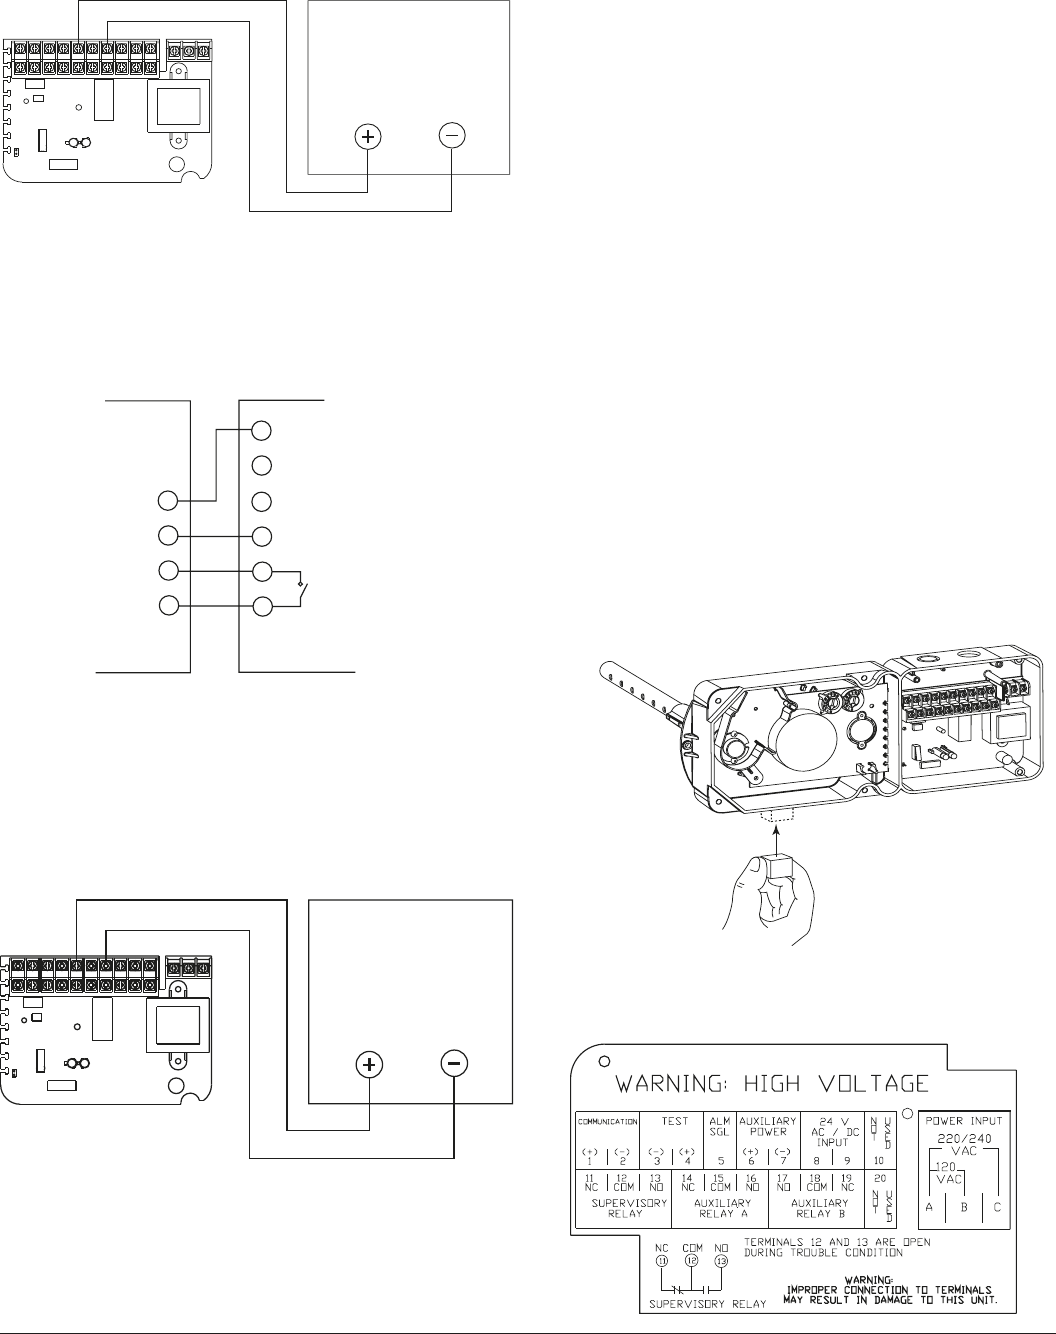 8483b56e 848c 4932 8d73 94b60800f0eb bg6 page 6 of system sensor smoke alarm dh200rpl user guide on siemens duct detector wiring diagram